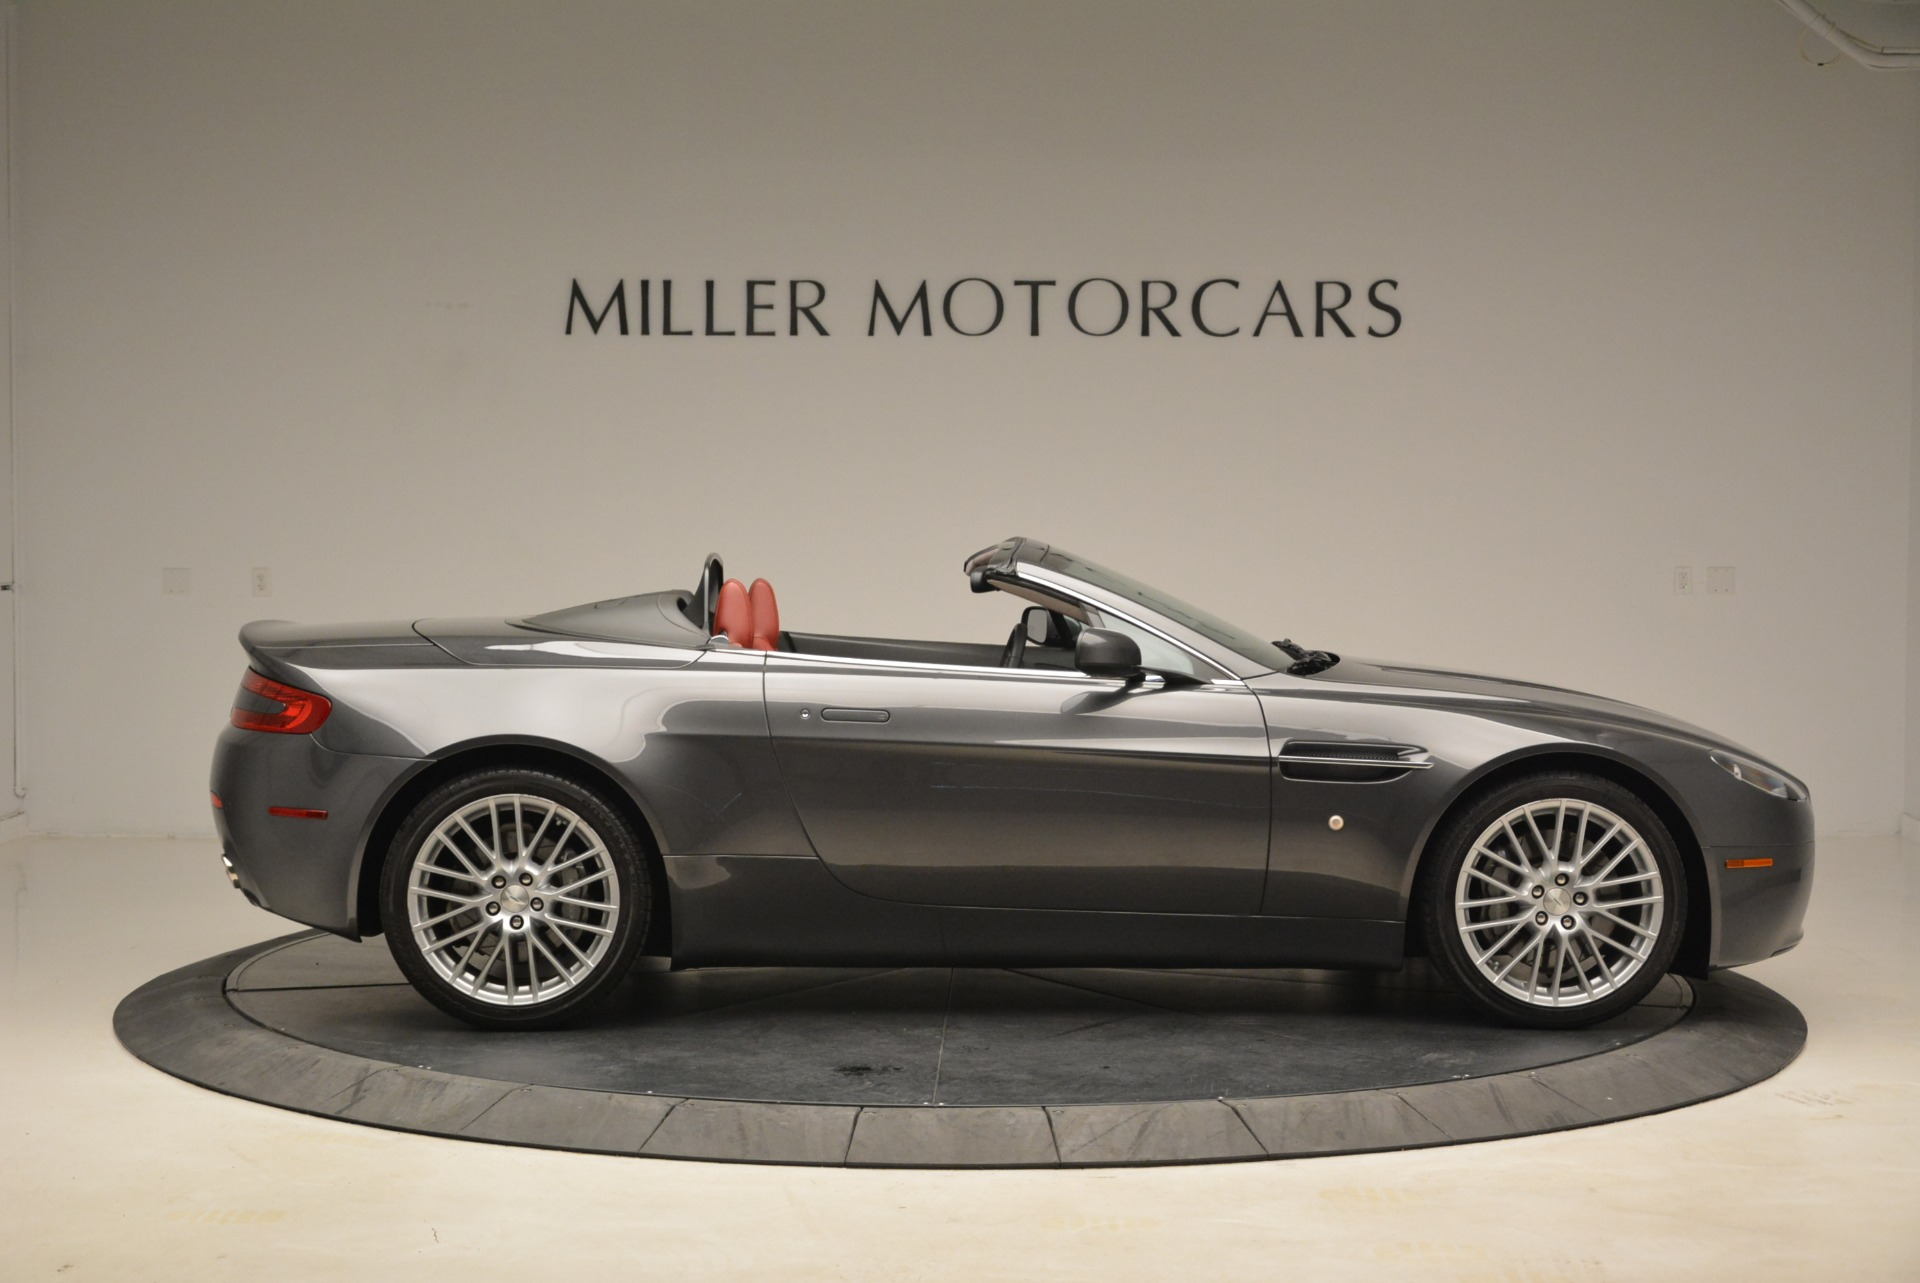 Used 2009 Aston Martin V8 Vantage Roadster For Sale In Westport, CT 2123_p9